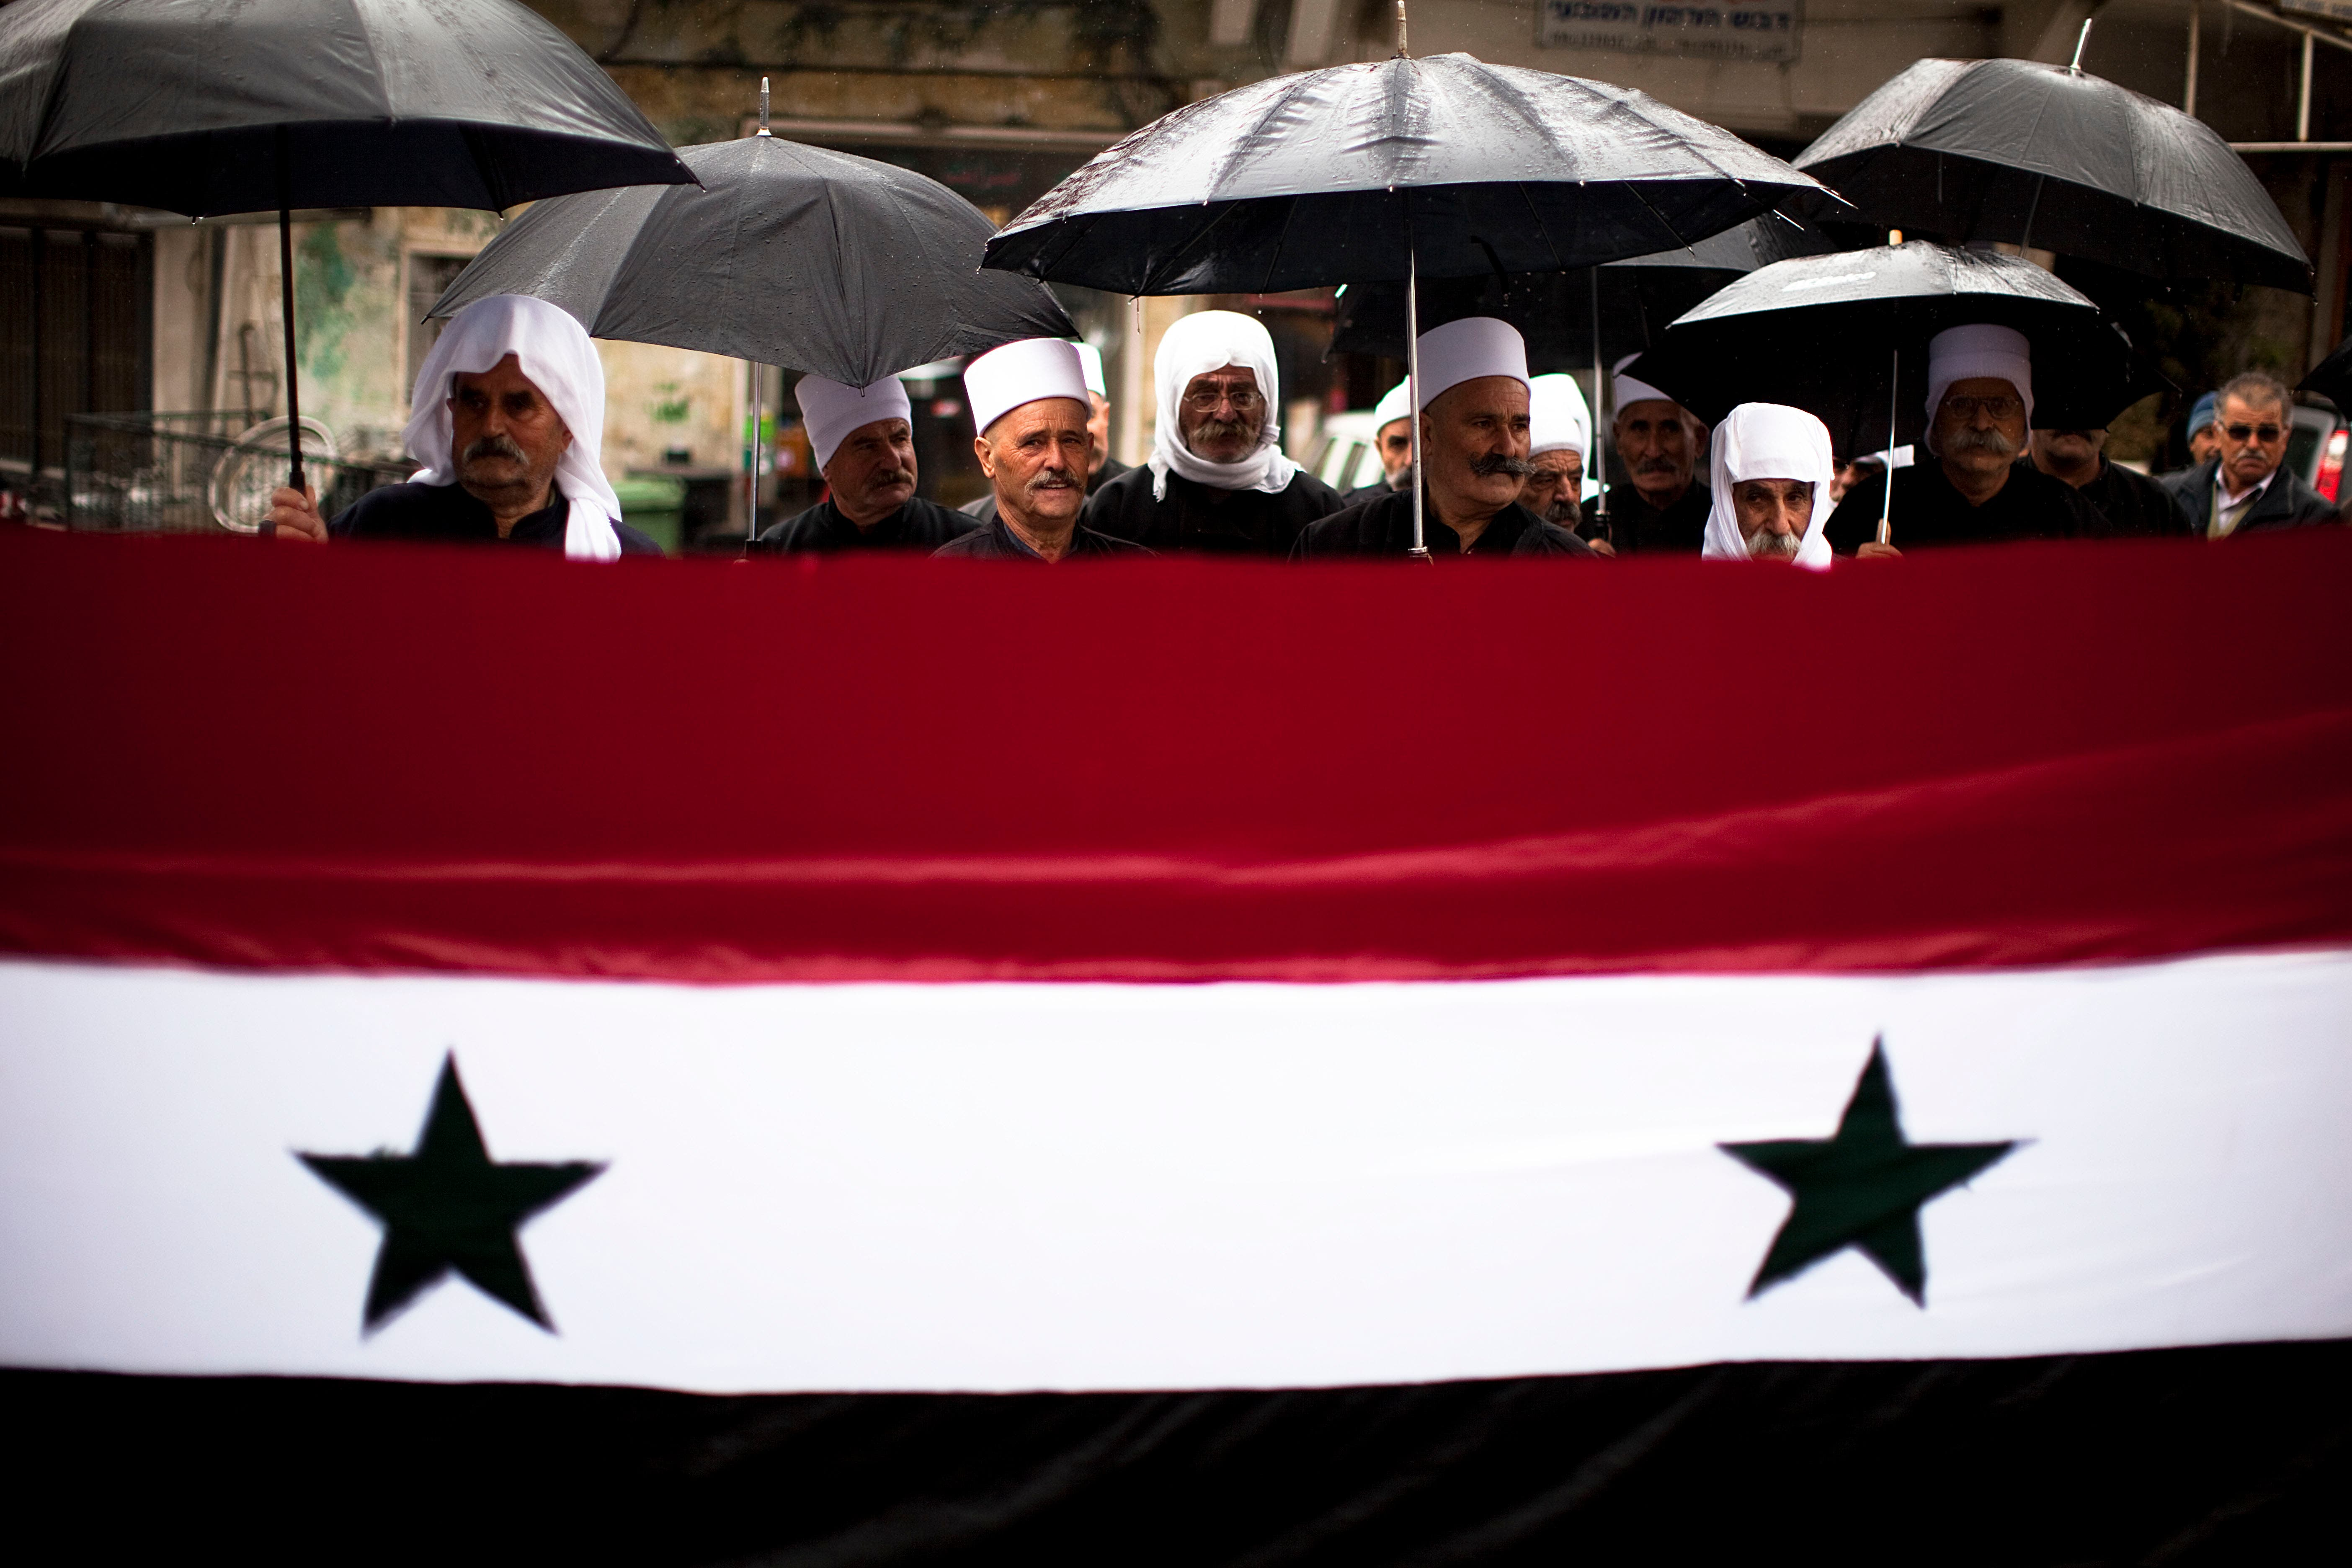 Syria has a diverse community, usually quite subdued.